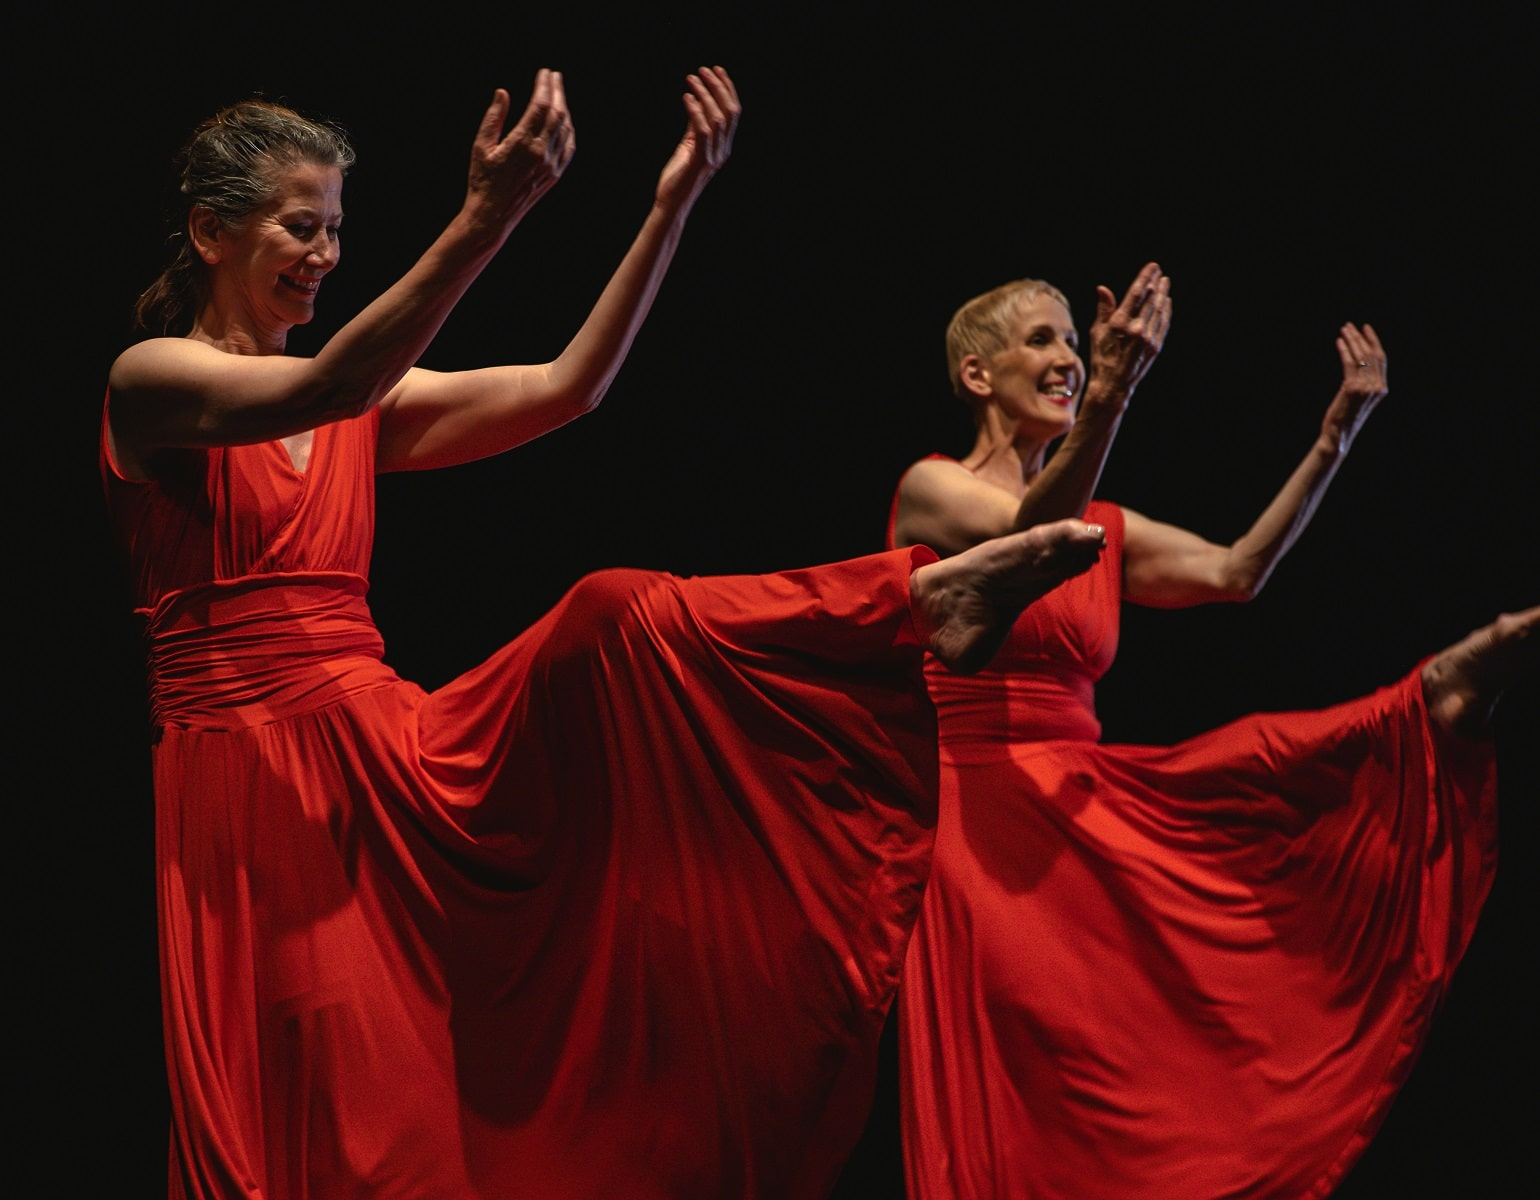 Dancers Jane Mooney (left) And Sandy Cuthbert (right) Star In Epilogue A Dancer Dies Twice Which Screens From 11 13 Oct As Part Of Belfast International Arts Festival.